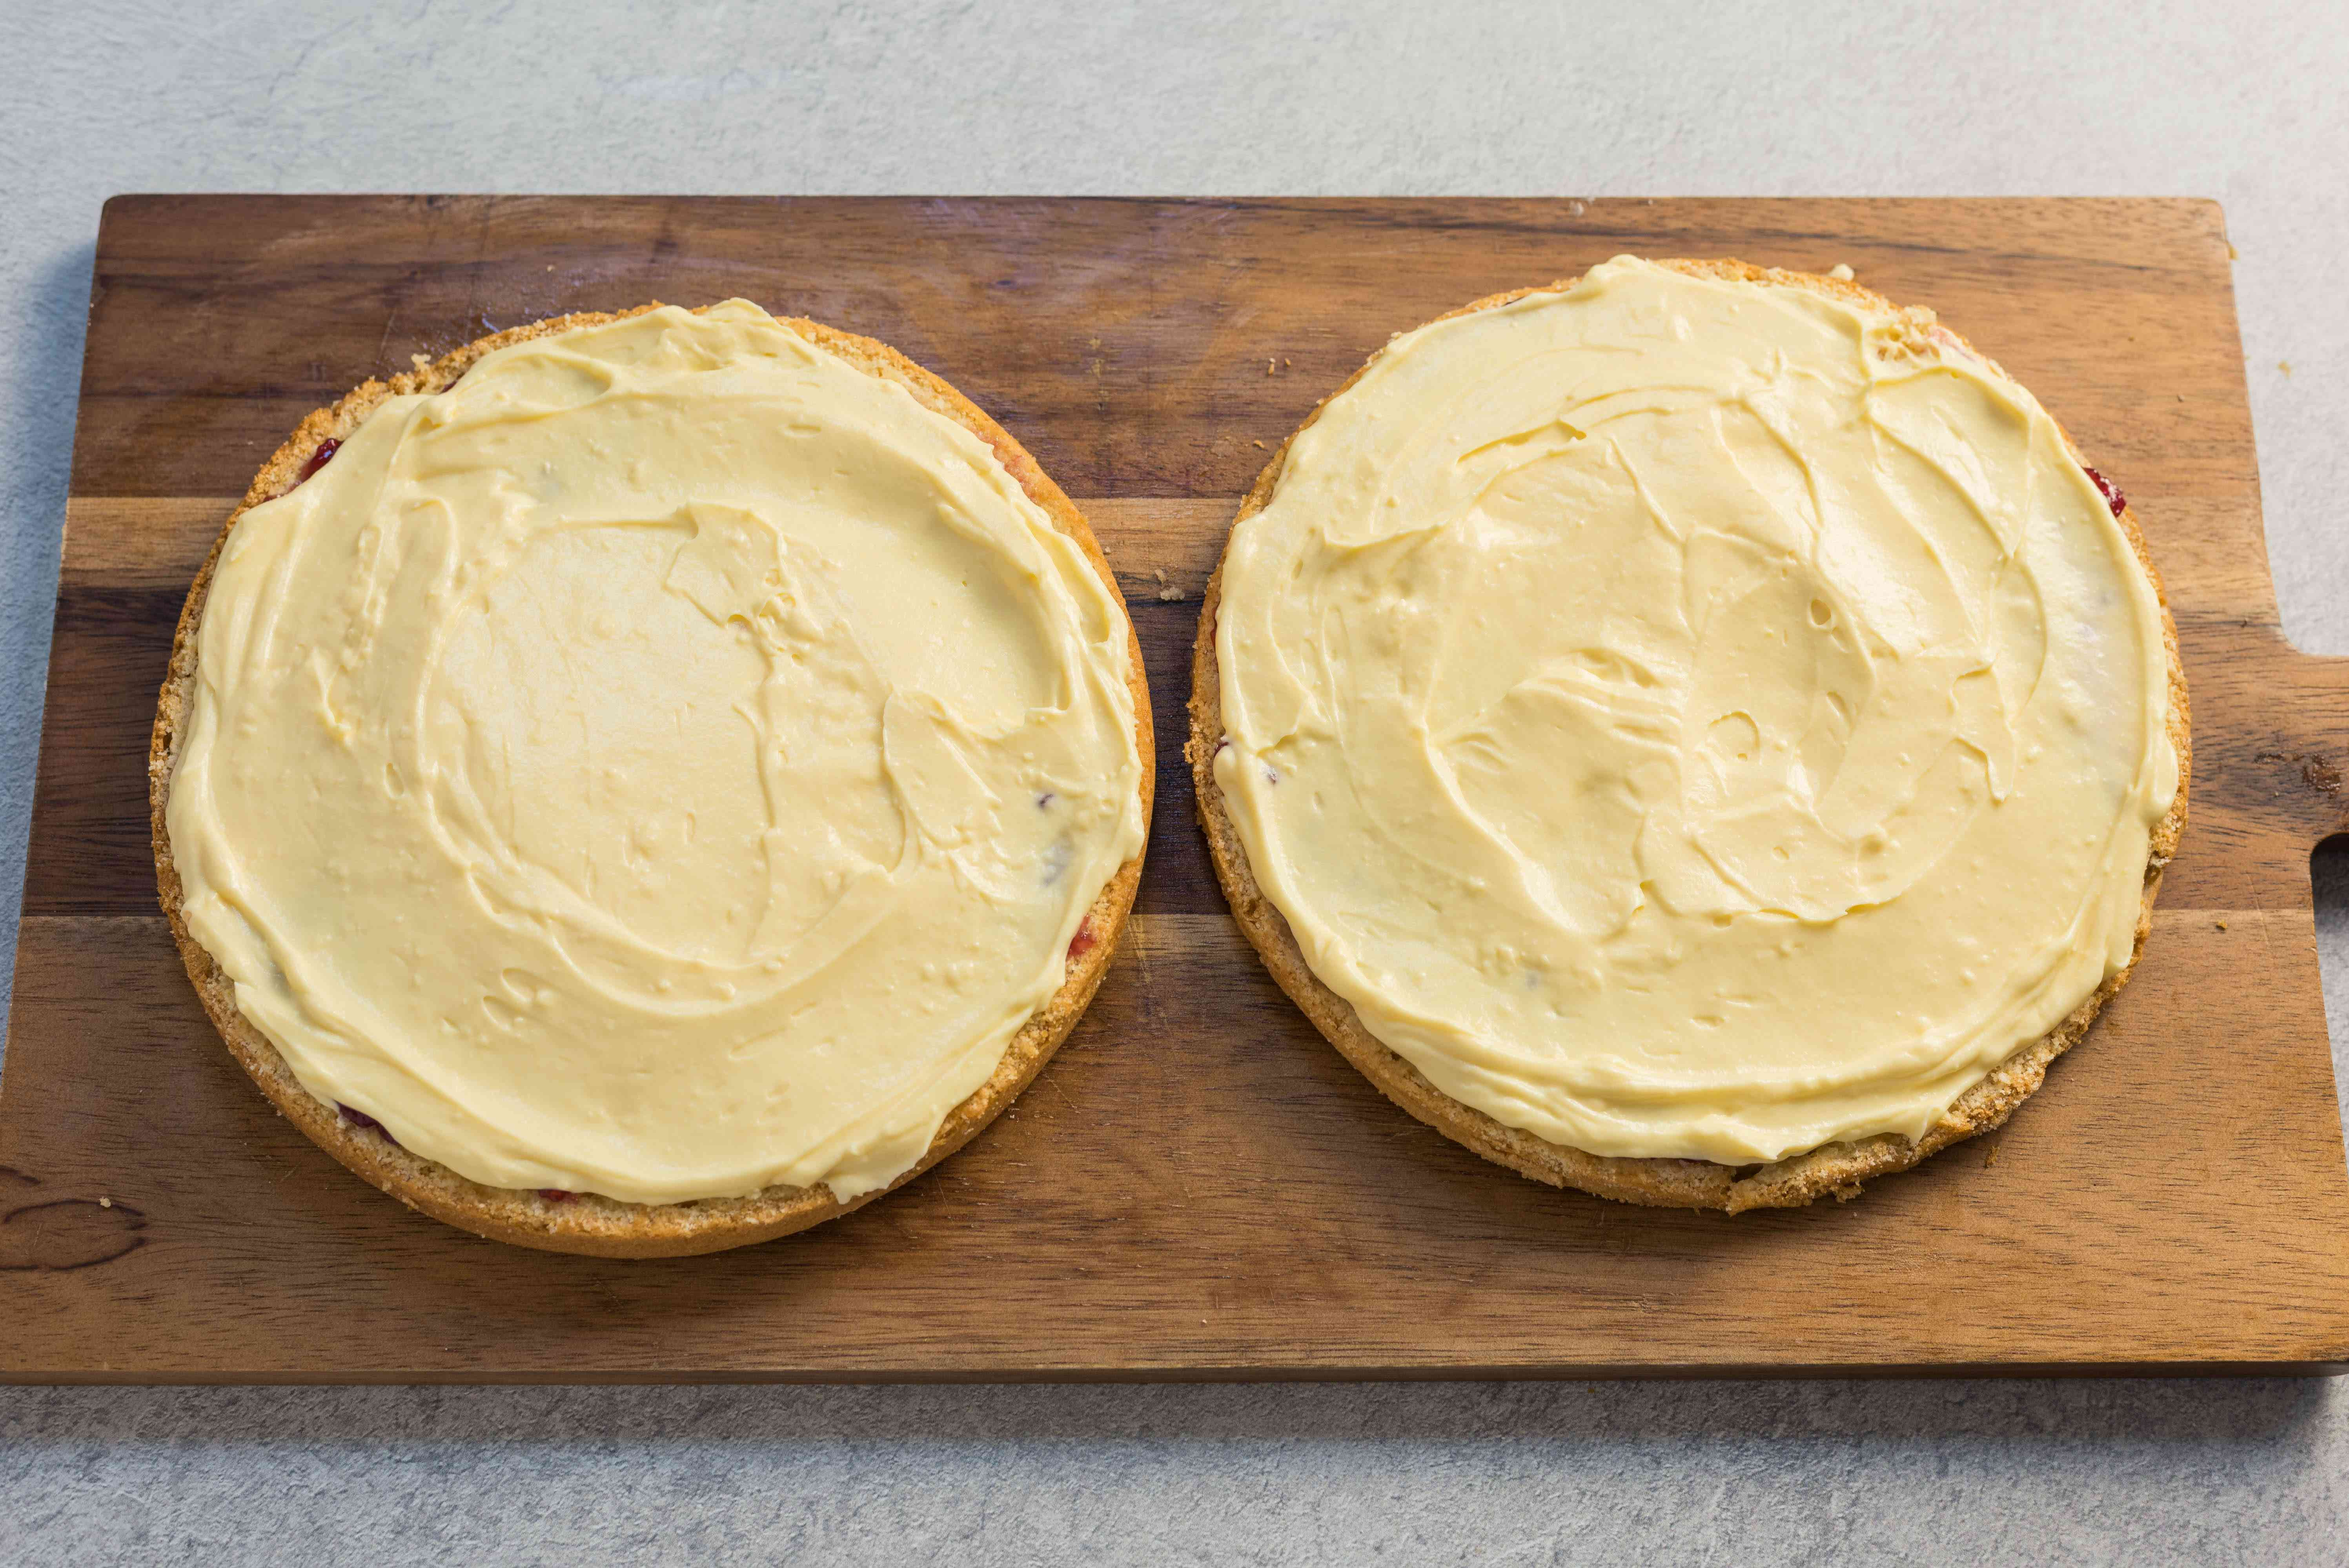 Spread pastry cream on top of cake